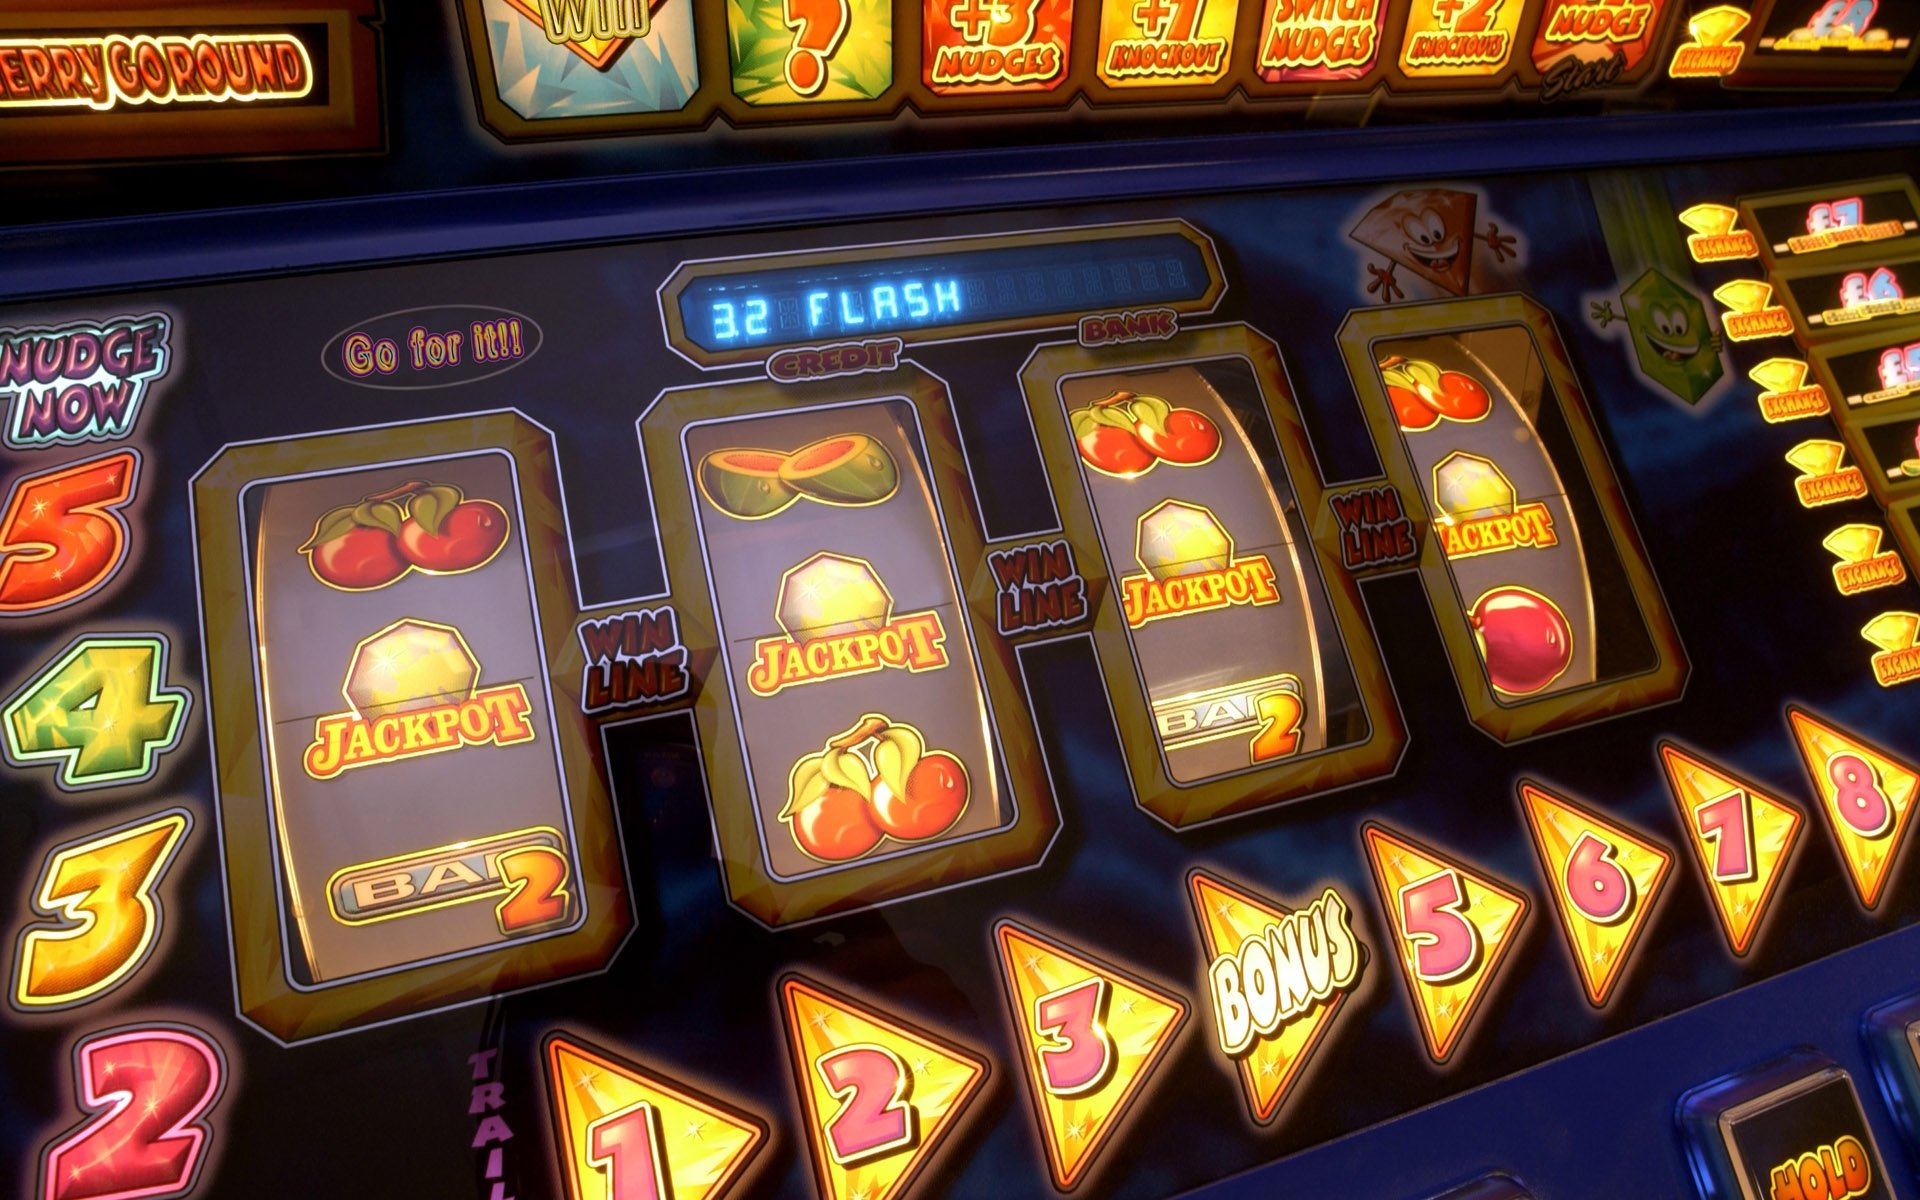 Compared to offline casinos, online casinos will be fast and efficient